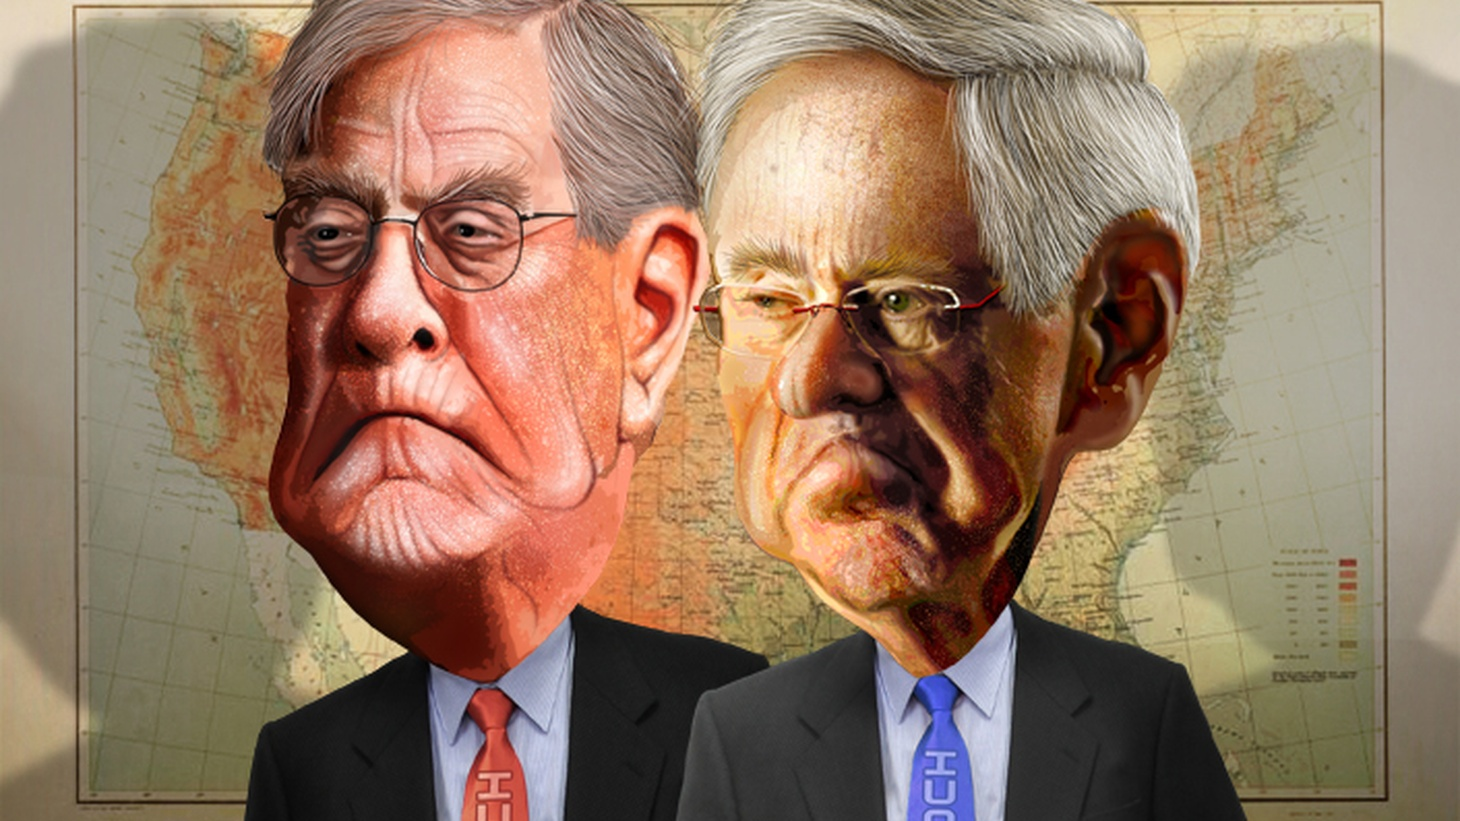 With campaign spending limits almost a thing of the past, candidates for the White House are lining up billionaires, giving a very few people unprecedented political power. Who are they? Is their influence a threat to democracy?